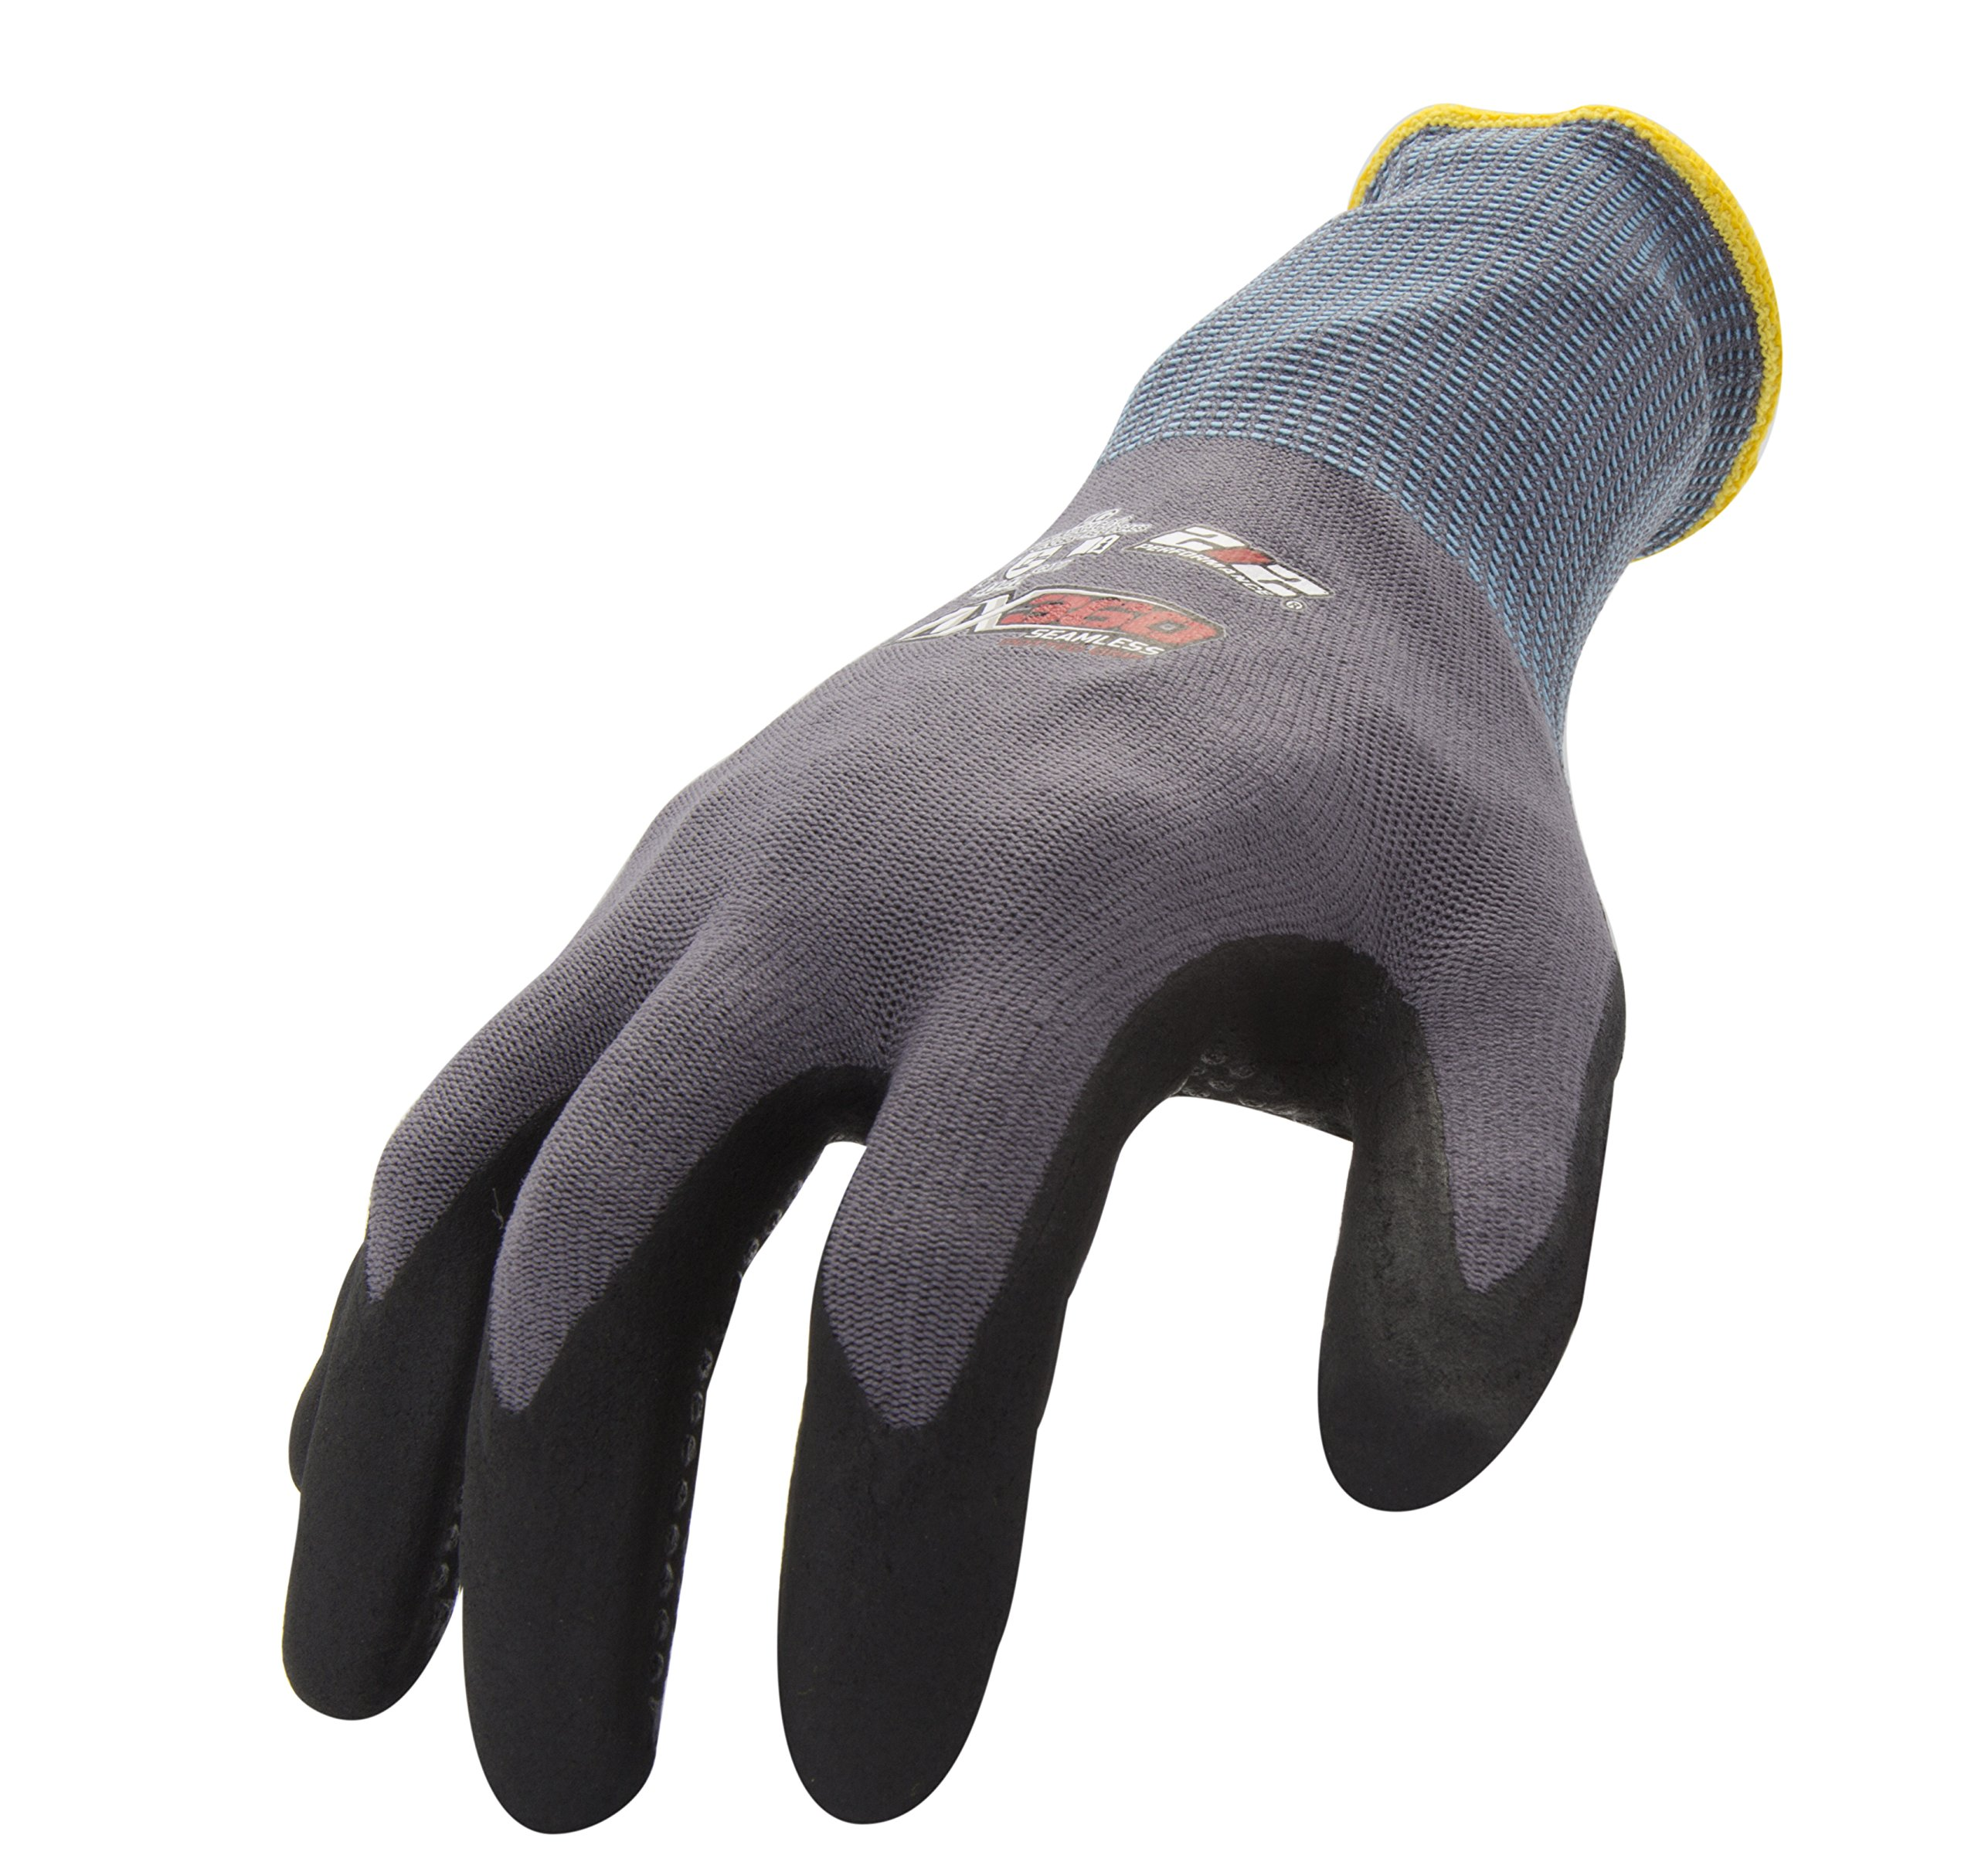 212 Performance Gloves AXDG-16-008 AX360 Dotted Grip Nitrile-dipped Work Glove, 12-Pair Bulk Pack, Small by 212 Performance Gloves (Image #1)